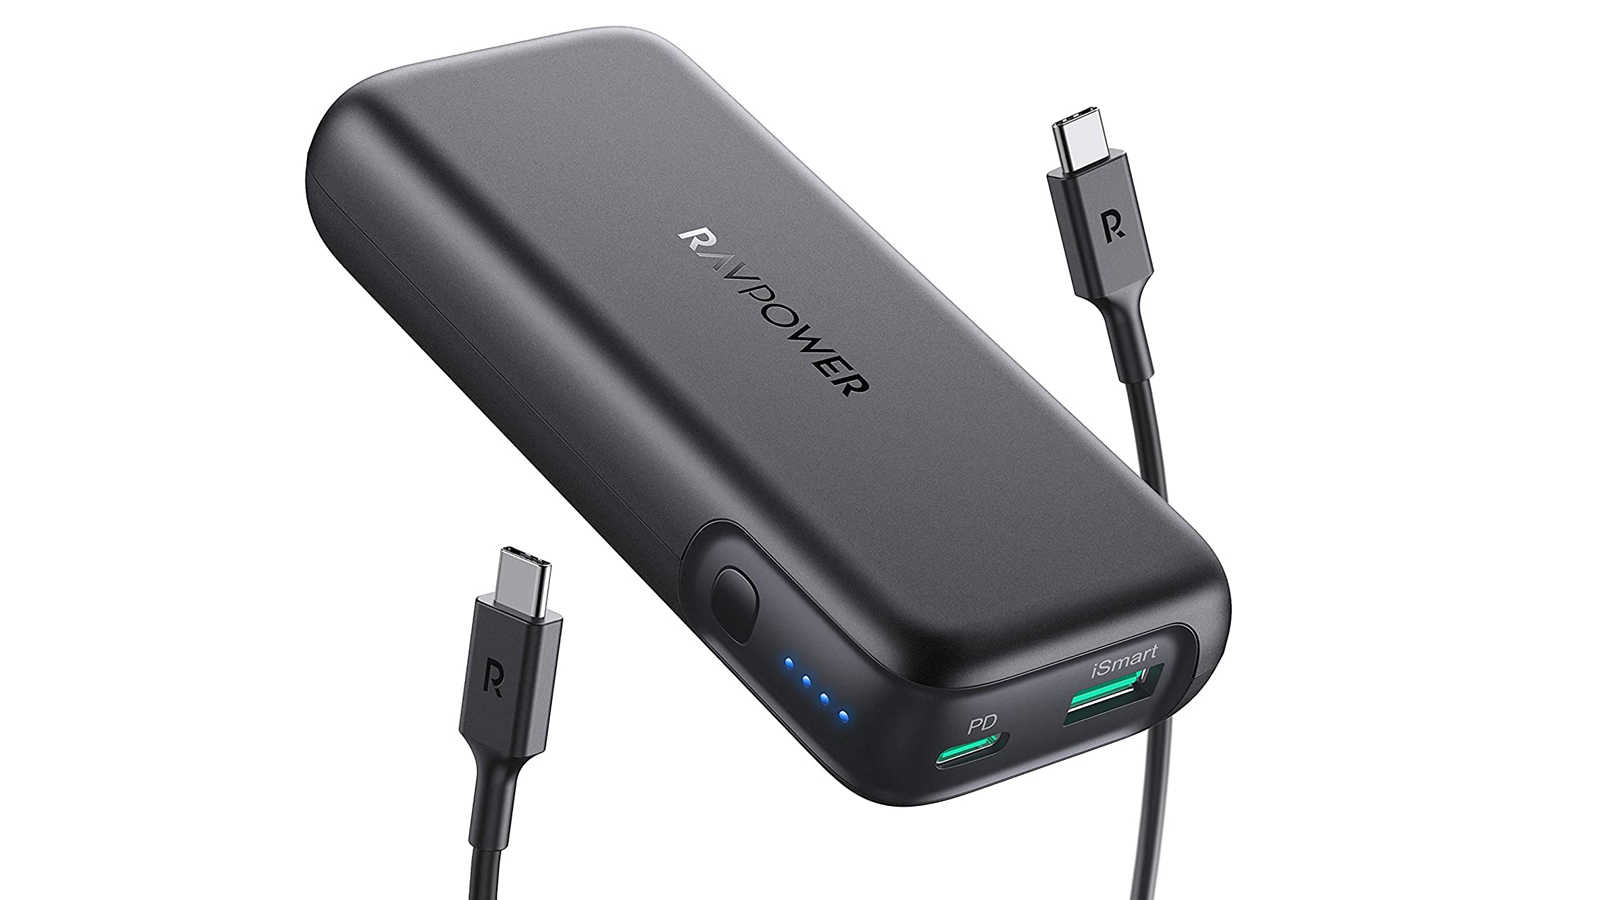 A photo of RAVPower's 10k mAh power bank and USB-C cable.